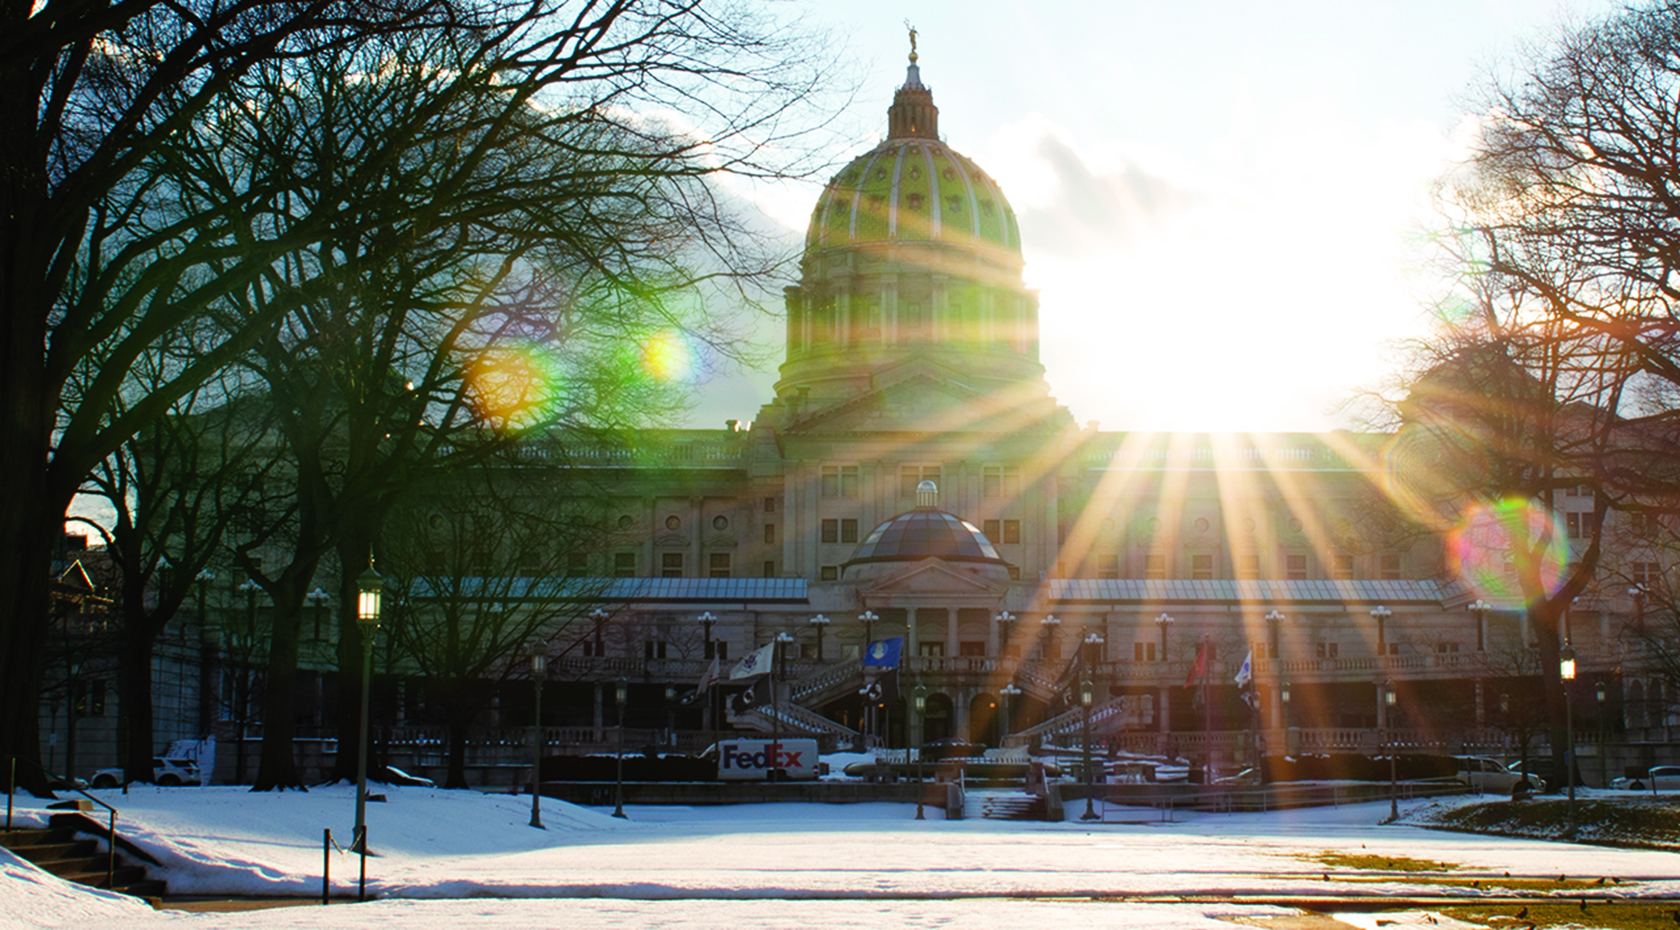 The Pennsylvania State Capitol at sunset from Soldier's Grove.